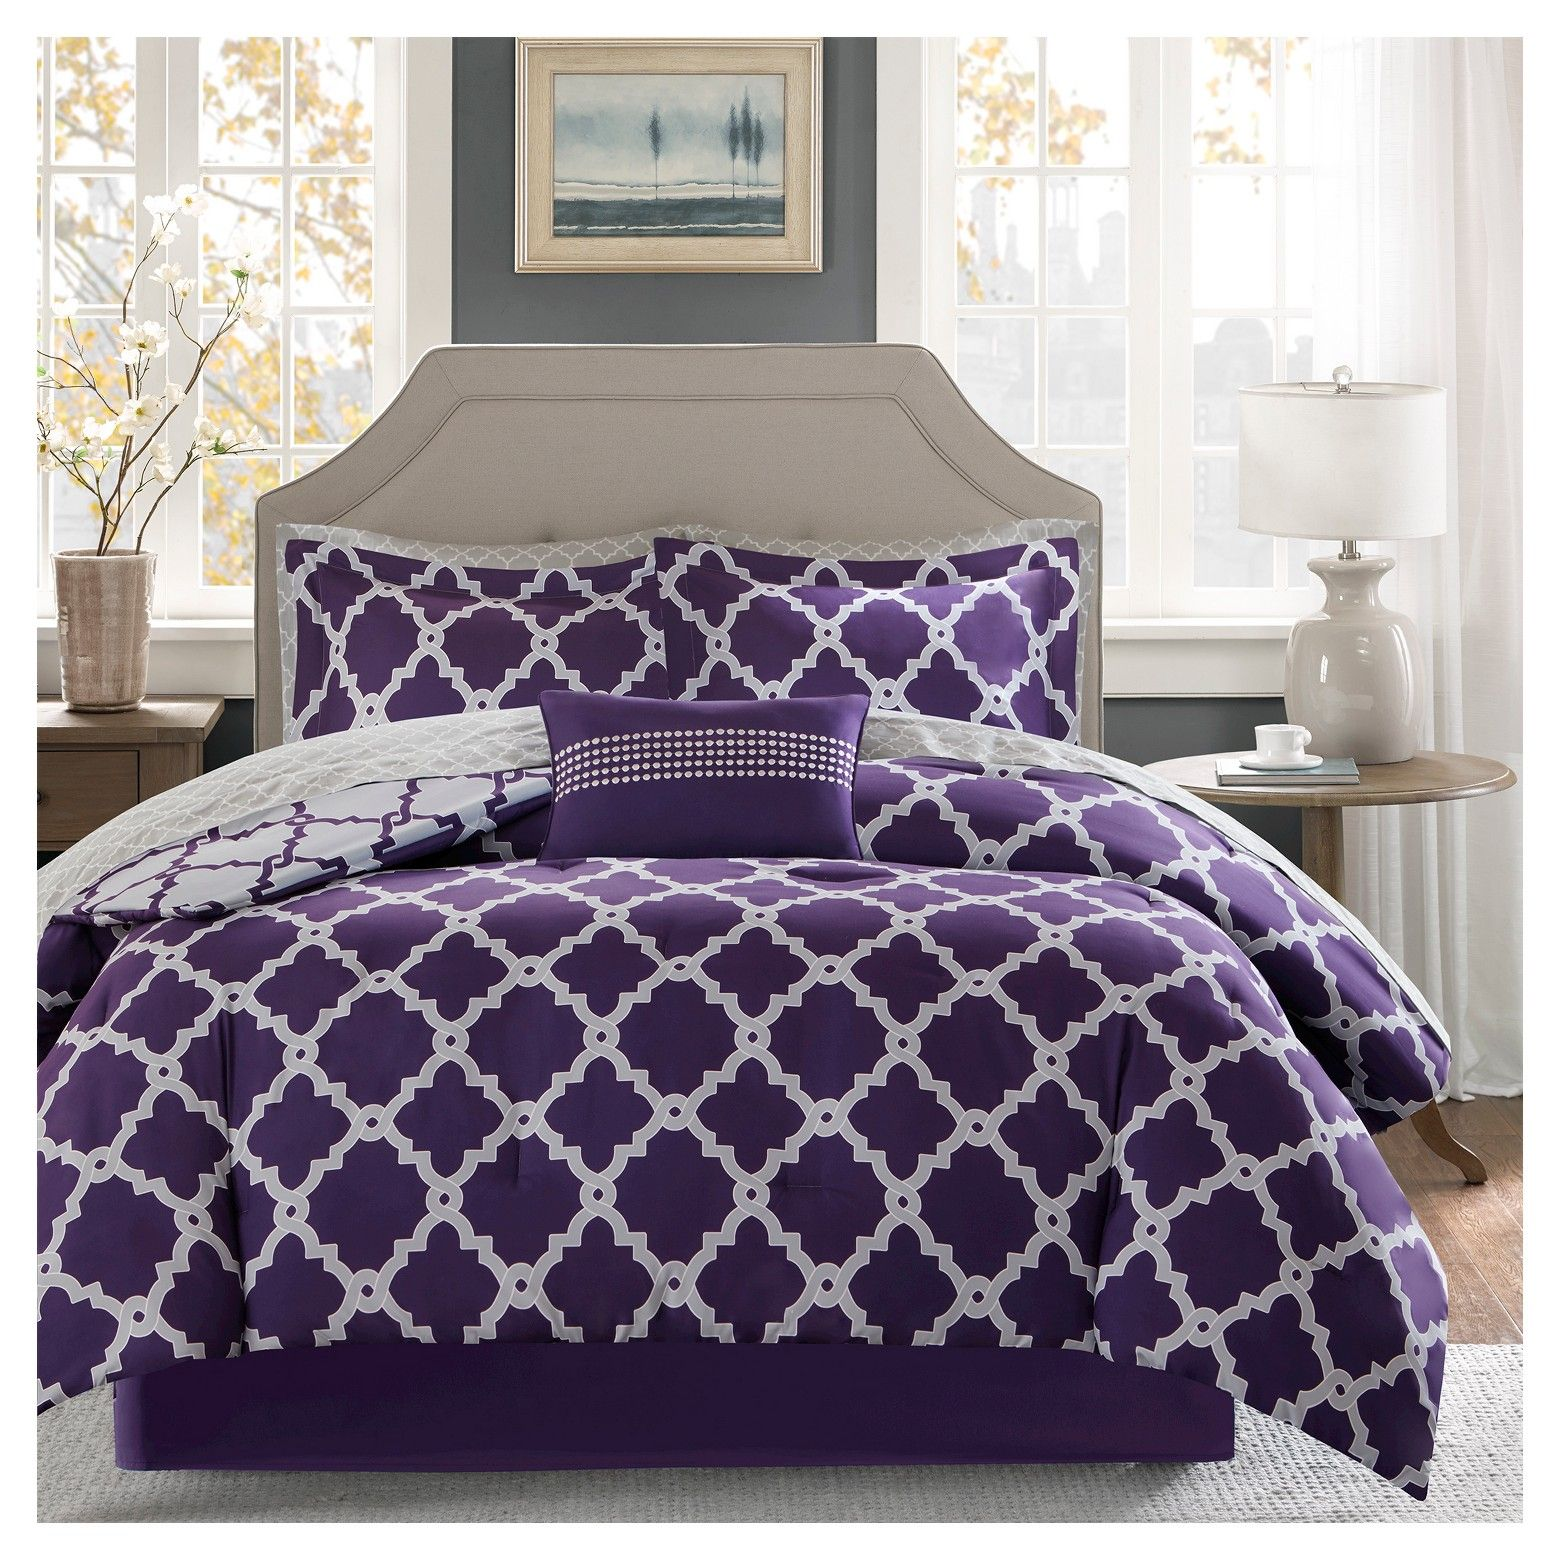 walmart twin target quilt sets full queen bedding comforter bedspreads size bed purple